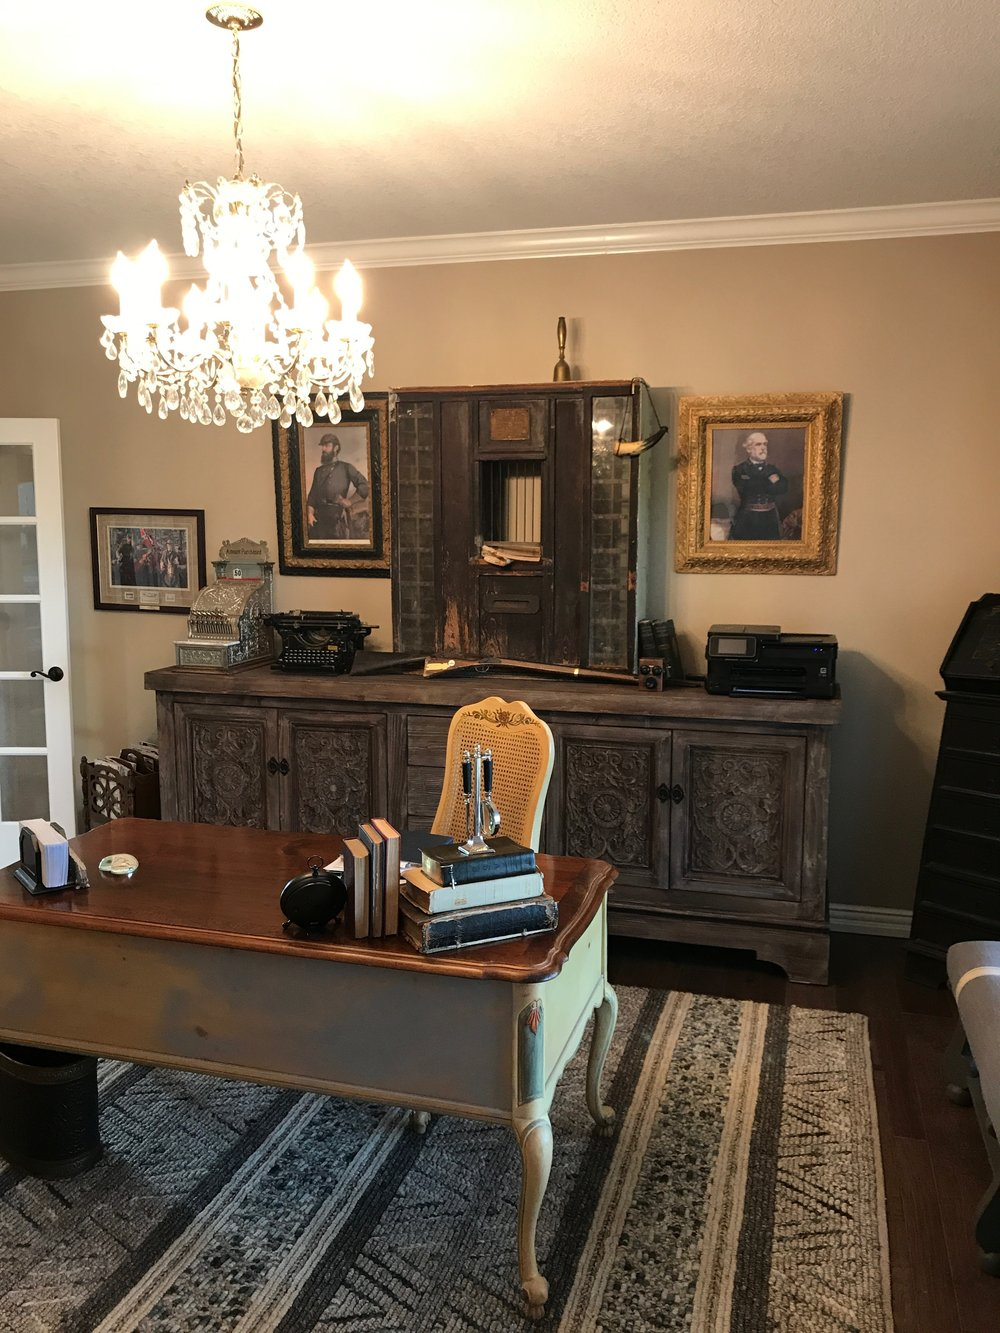 HIWASSE Home Office - Filled with vintage heirlooms